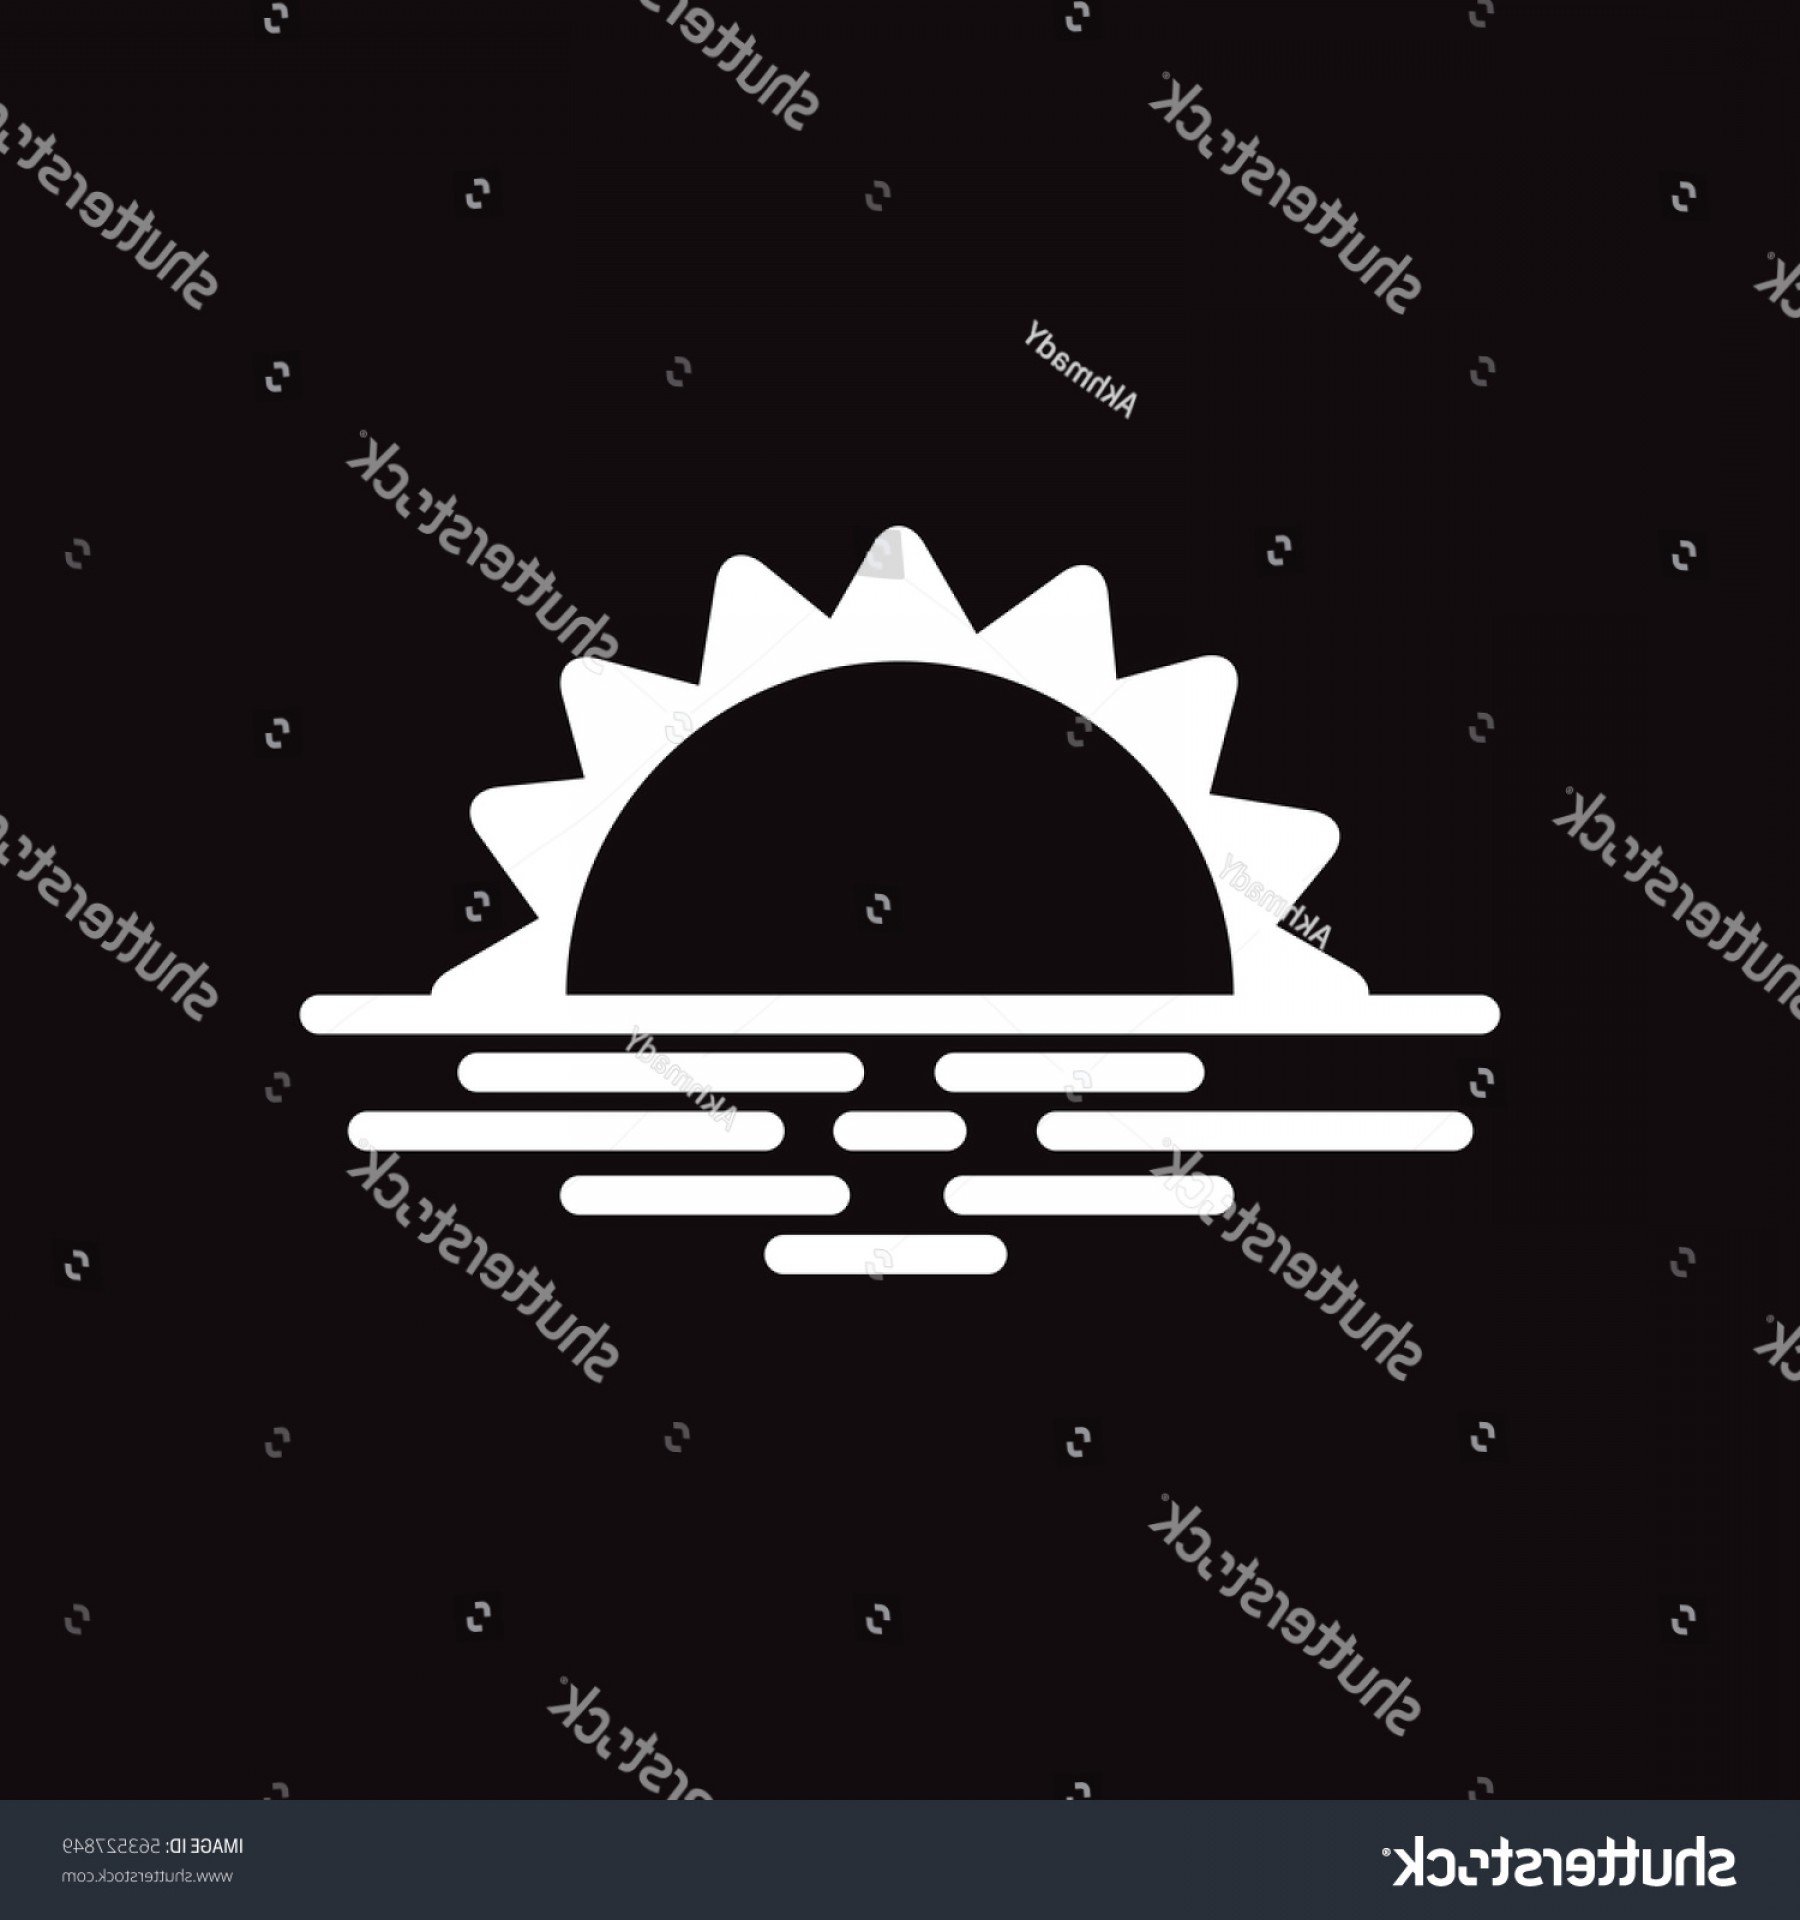 Sunset Black And White Backgrounds Vector: White Vector Icon On Black Background